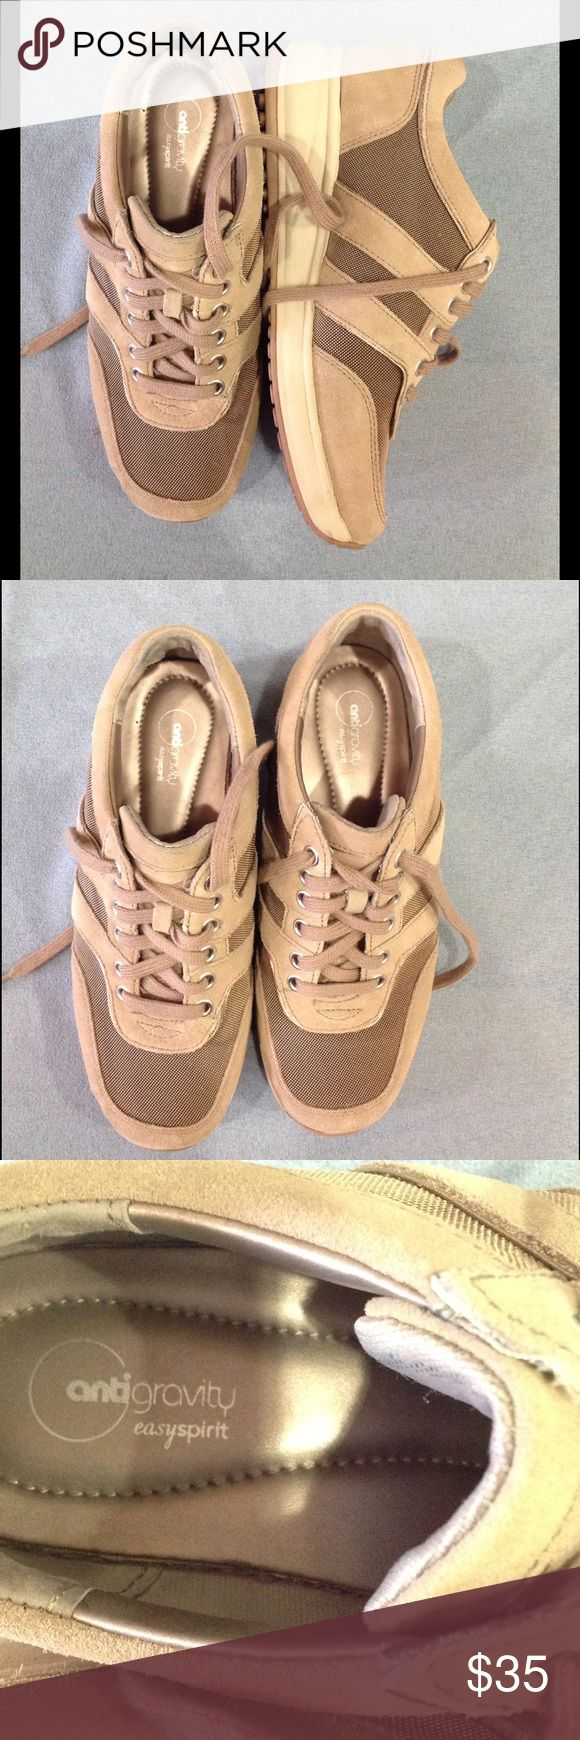 Beige Comfort Sneakers Easy Wearing! Beige, worn once, original laces, really comfortable sneakers! 👟 Women's Size 8 W Shoes Athletic Shoes